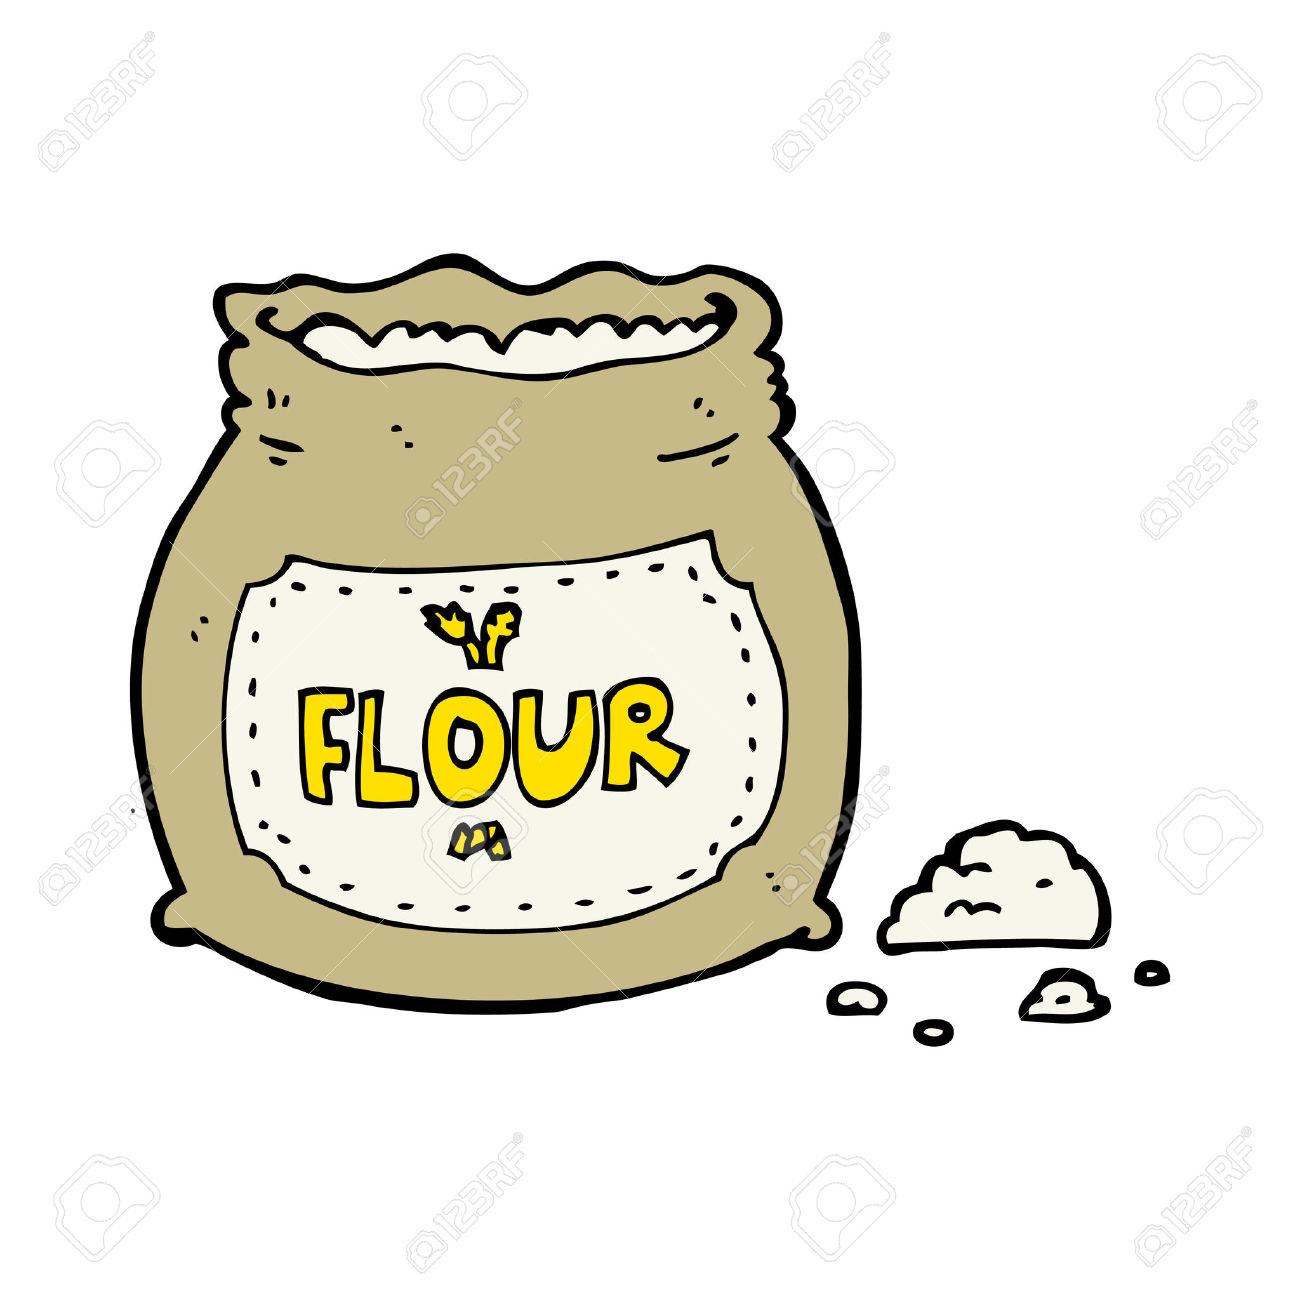 1300x1300 Flour Clip Art Free Collection Download And Share Flour Clip Art